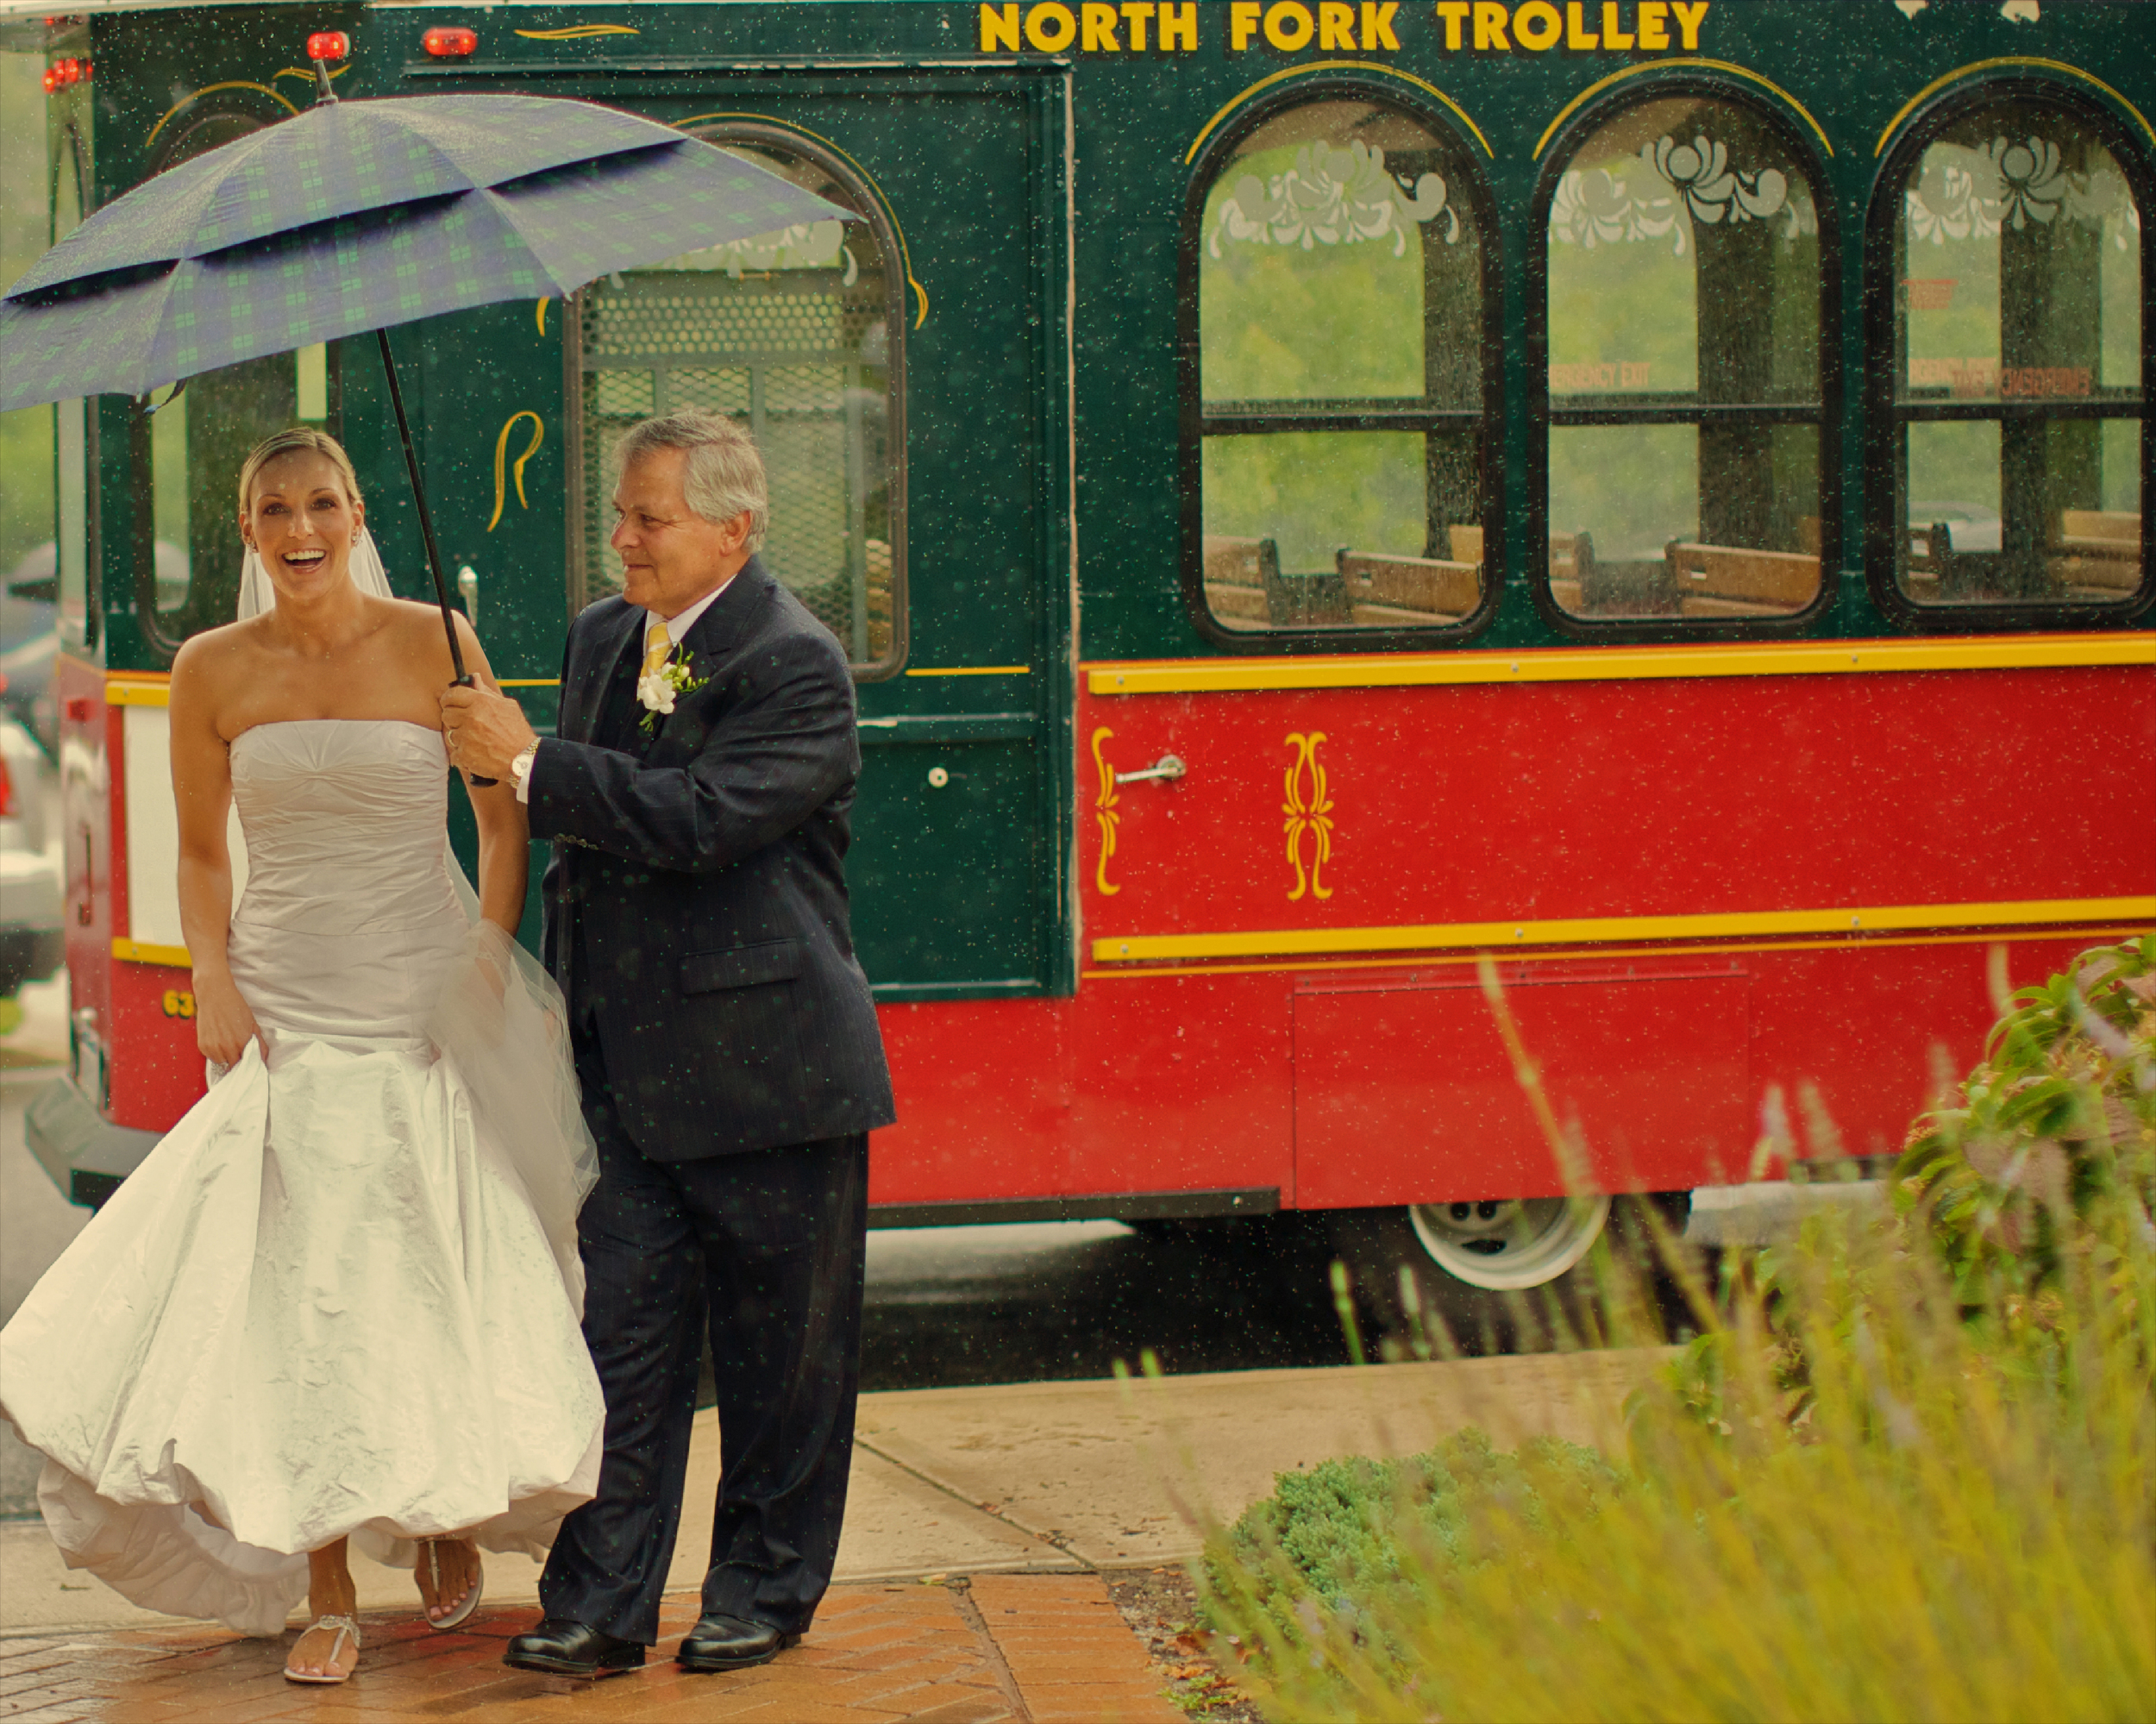 Come rain, snow, or shine Charles and Jennifer Maring bring calm to the wedding day created gorgeous photographs and memories for couples.